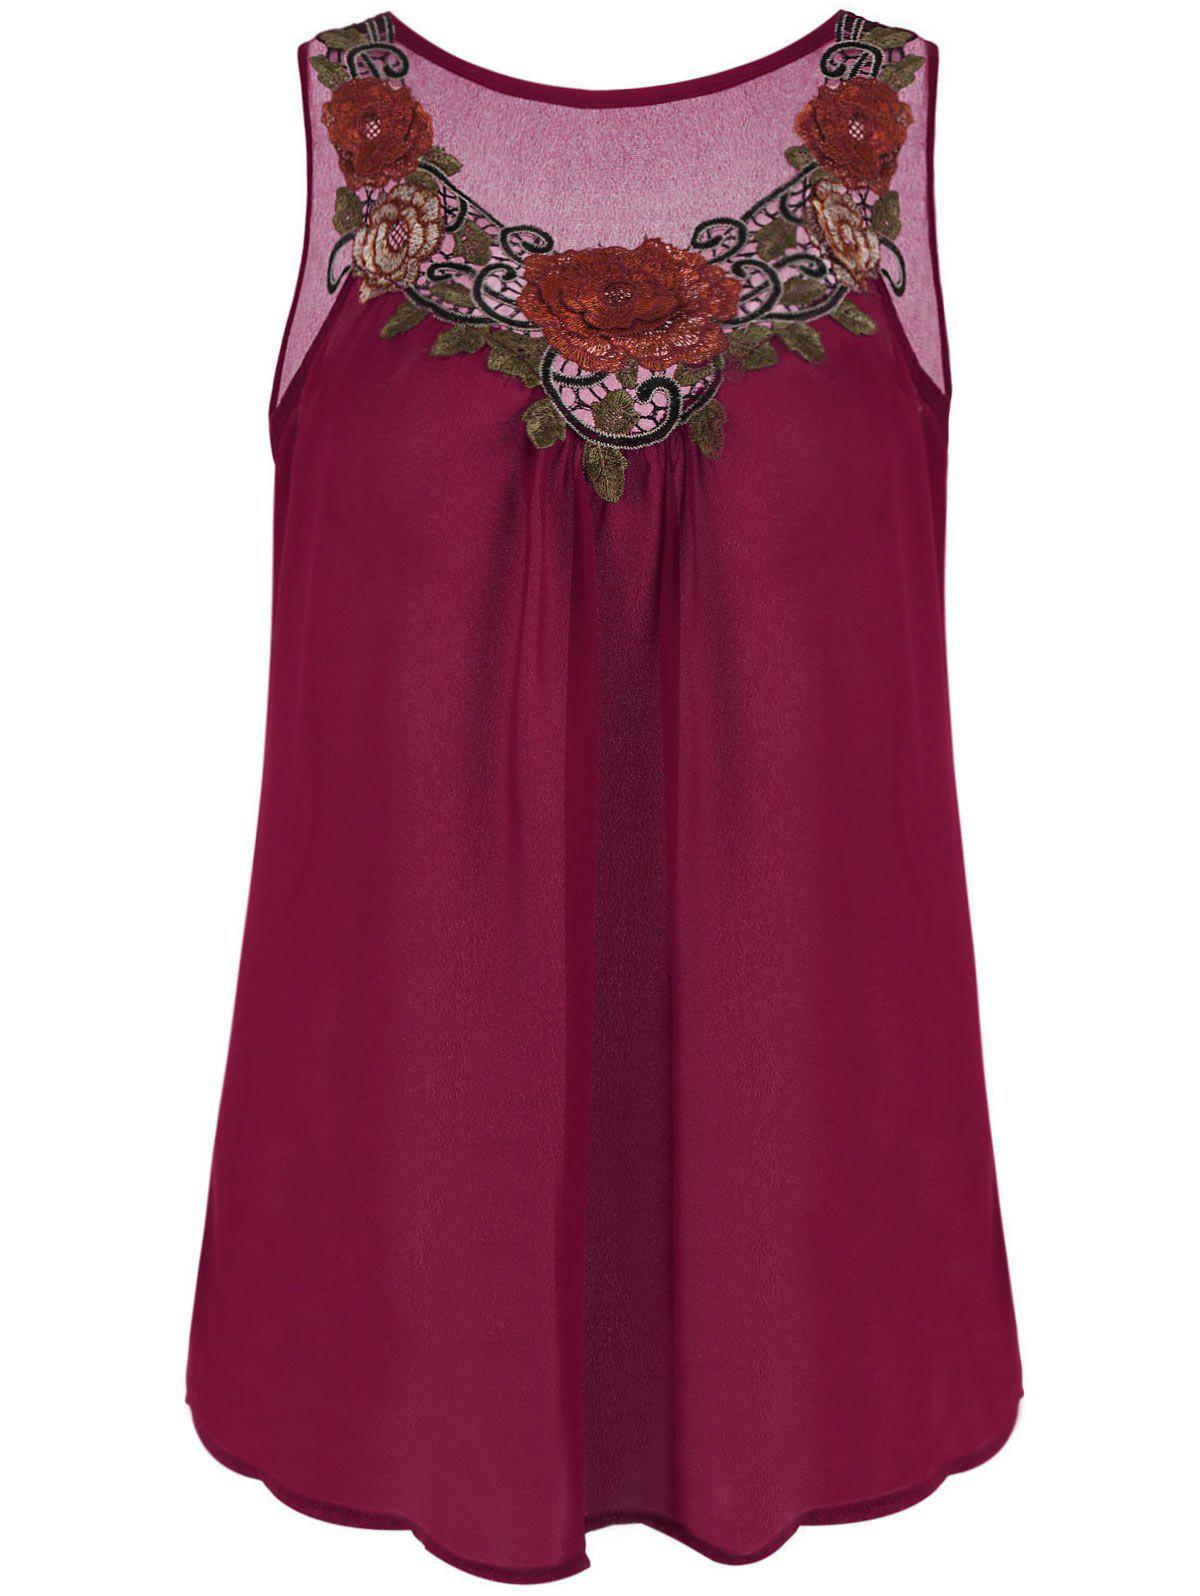 Store Embroidered Sleeveless Plus Size Chiffon Top